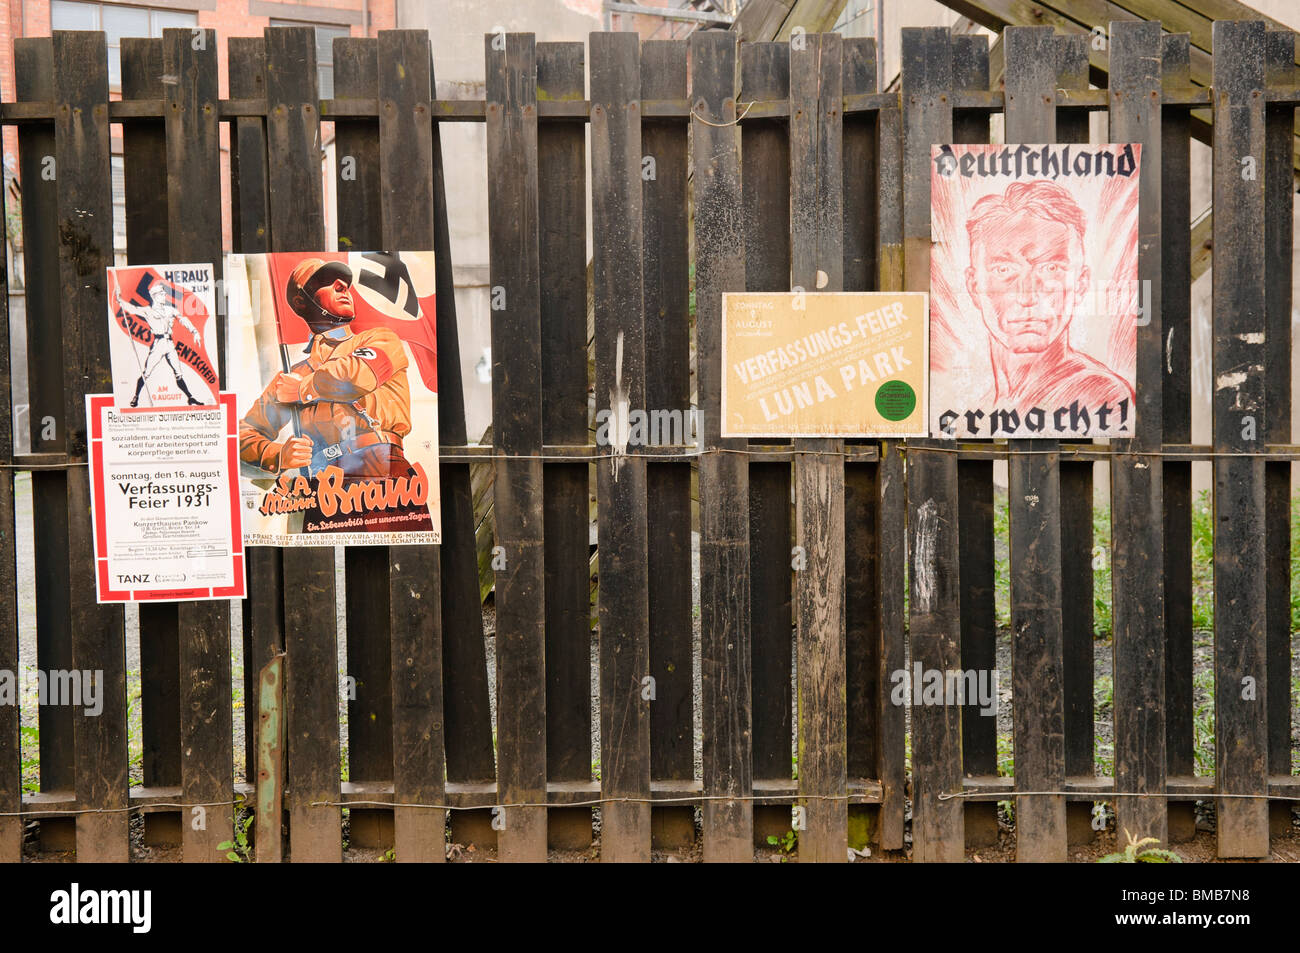 Nazi Propaganda posters on a fence on a film set recreating Berlin in the mid 1930s - Stock Image